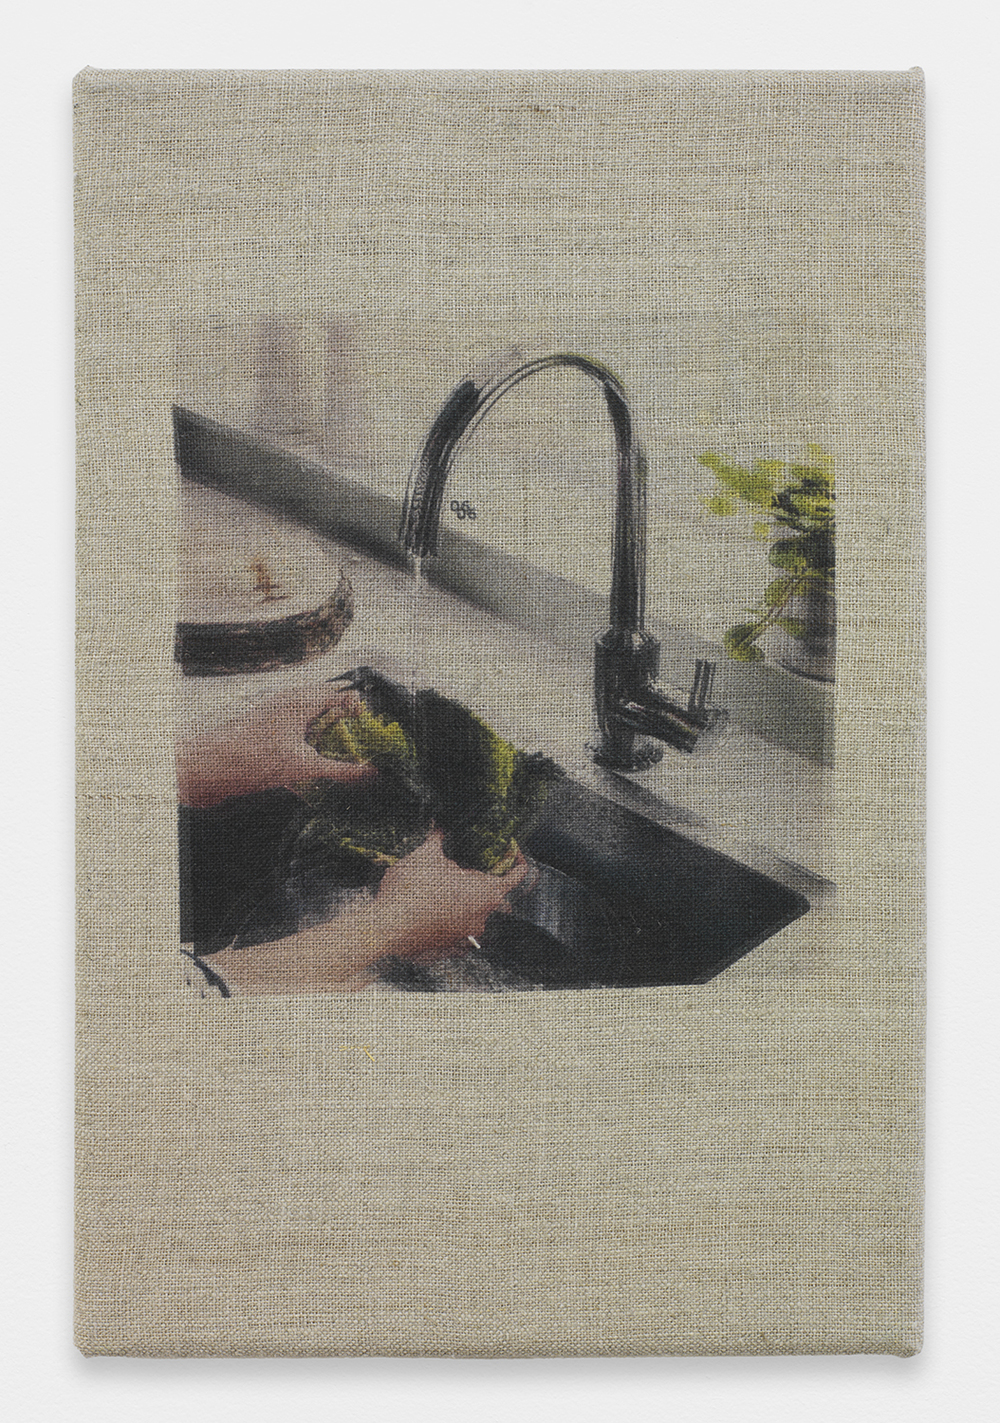 AUGUSTUS THOMPSON  Ikea (Washing Lettuce)  , 2013   Inkjet on linen   12 x 8 inches